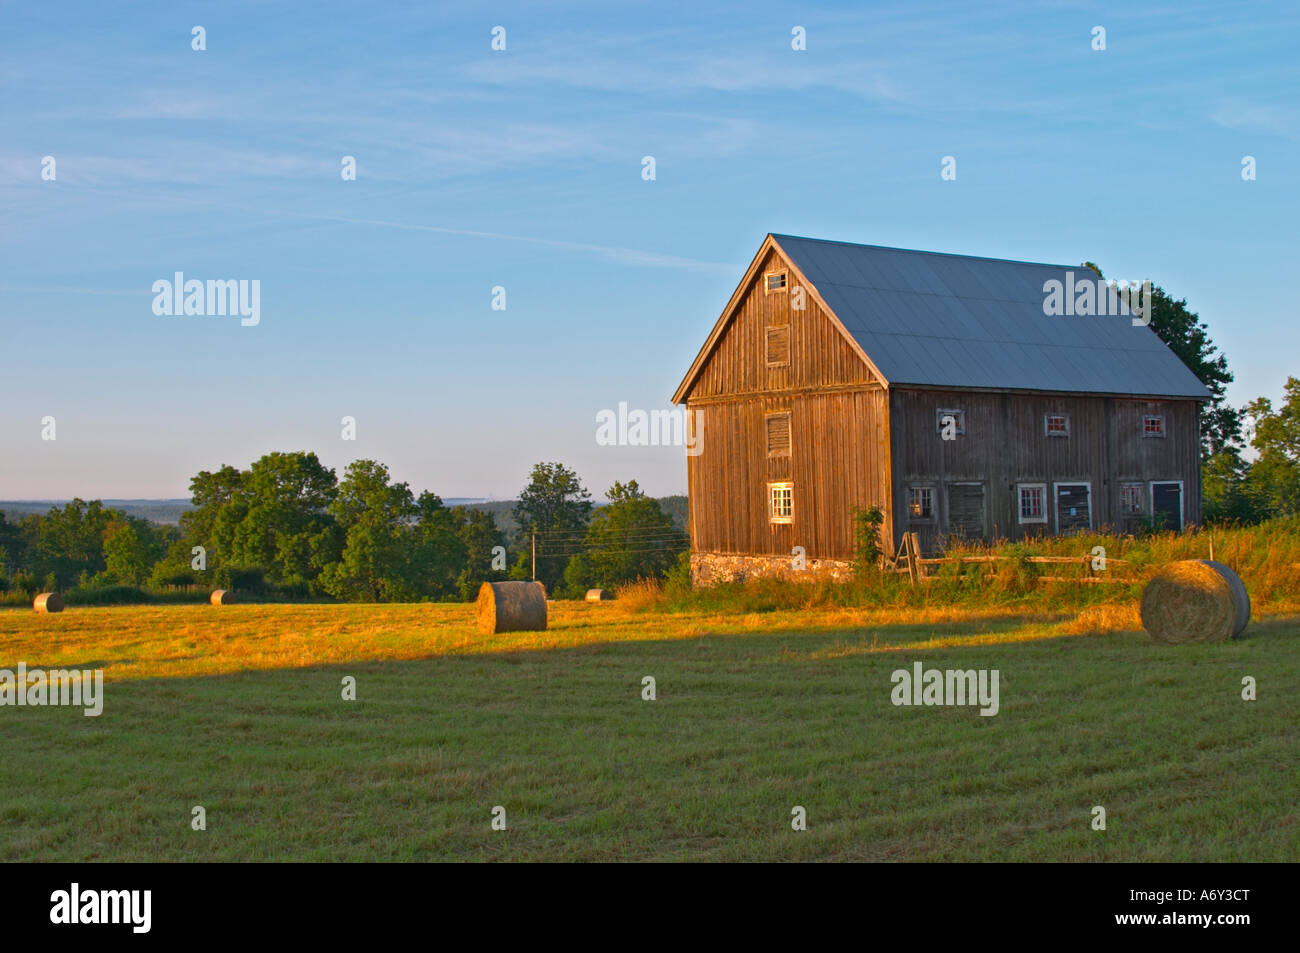 Cut Field With Hay Bales At Sunrise Old Farm House Barn Traditional Style Swedish